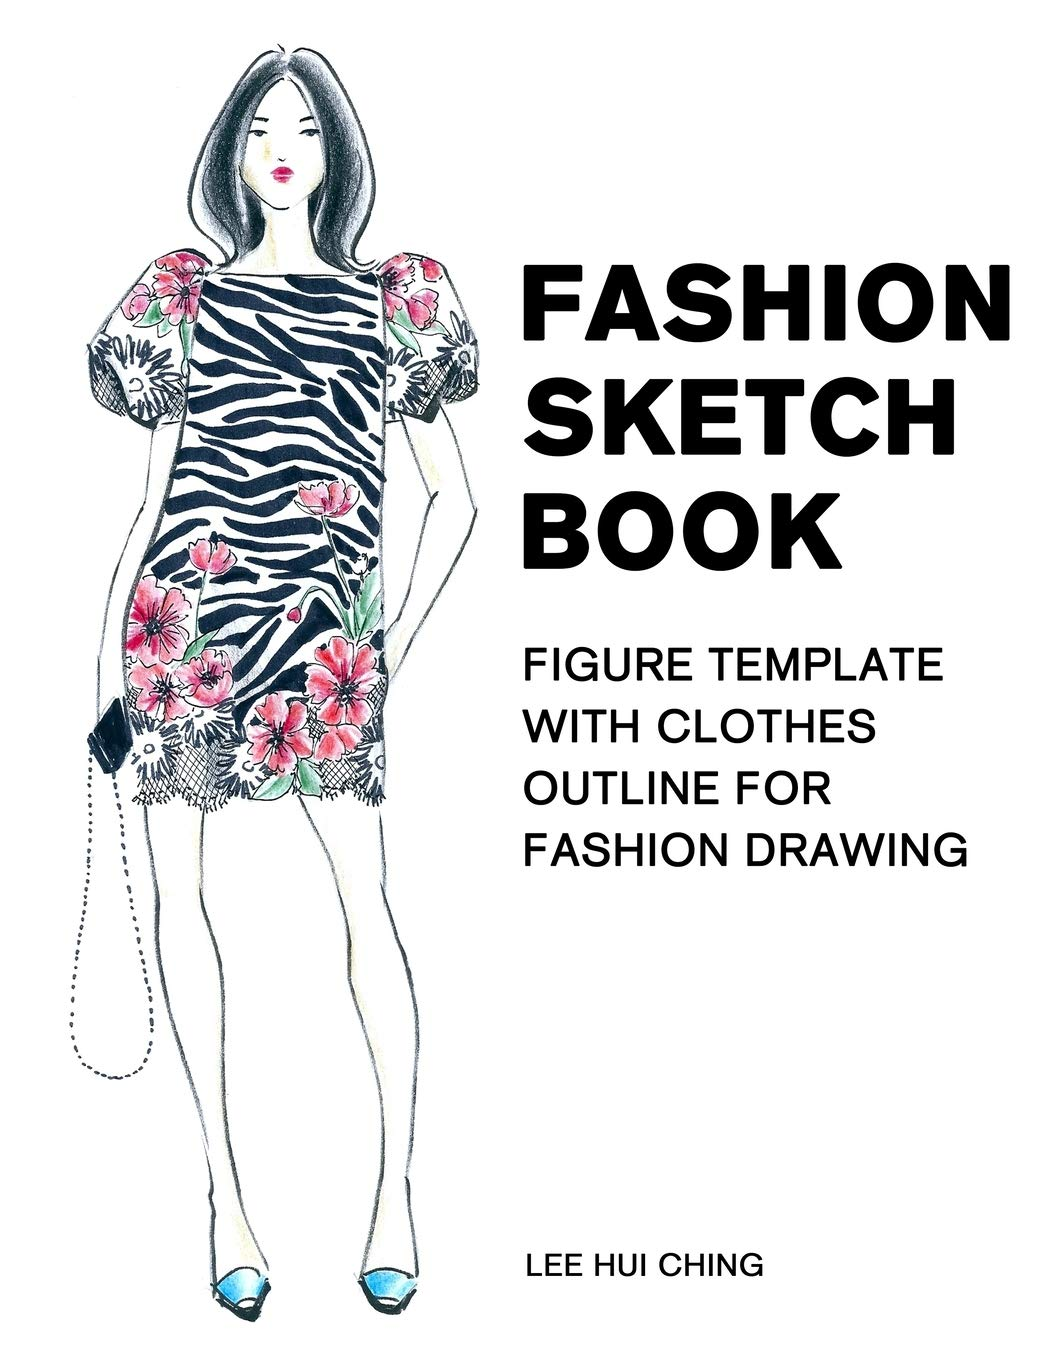 Fashion Sketch Book Figure Template With Clothes Outline For Fashion Drawing Large Female Figure Template With Dressing Outline For Easily Sketching Styles And Practicing Fashion Illustration Lee Hui Ching Profashional Design